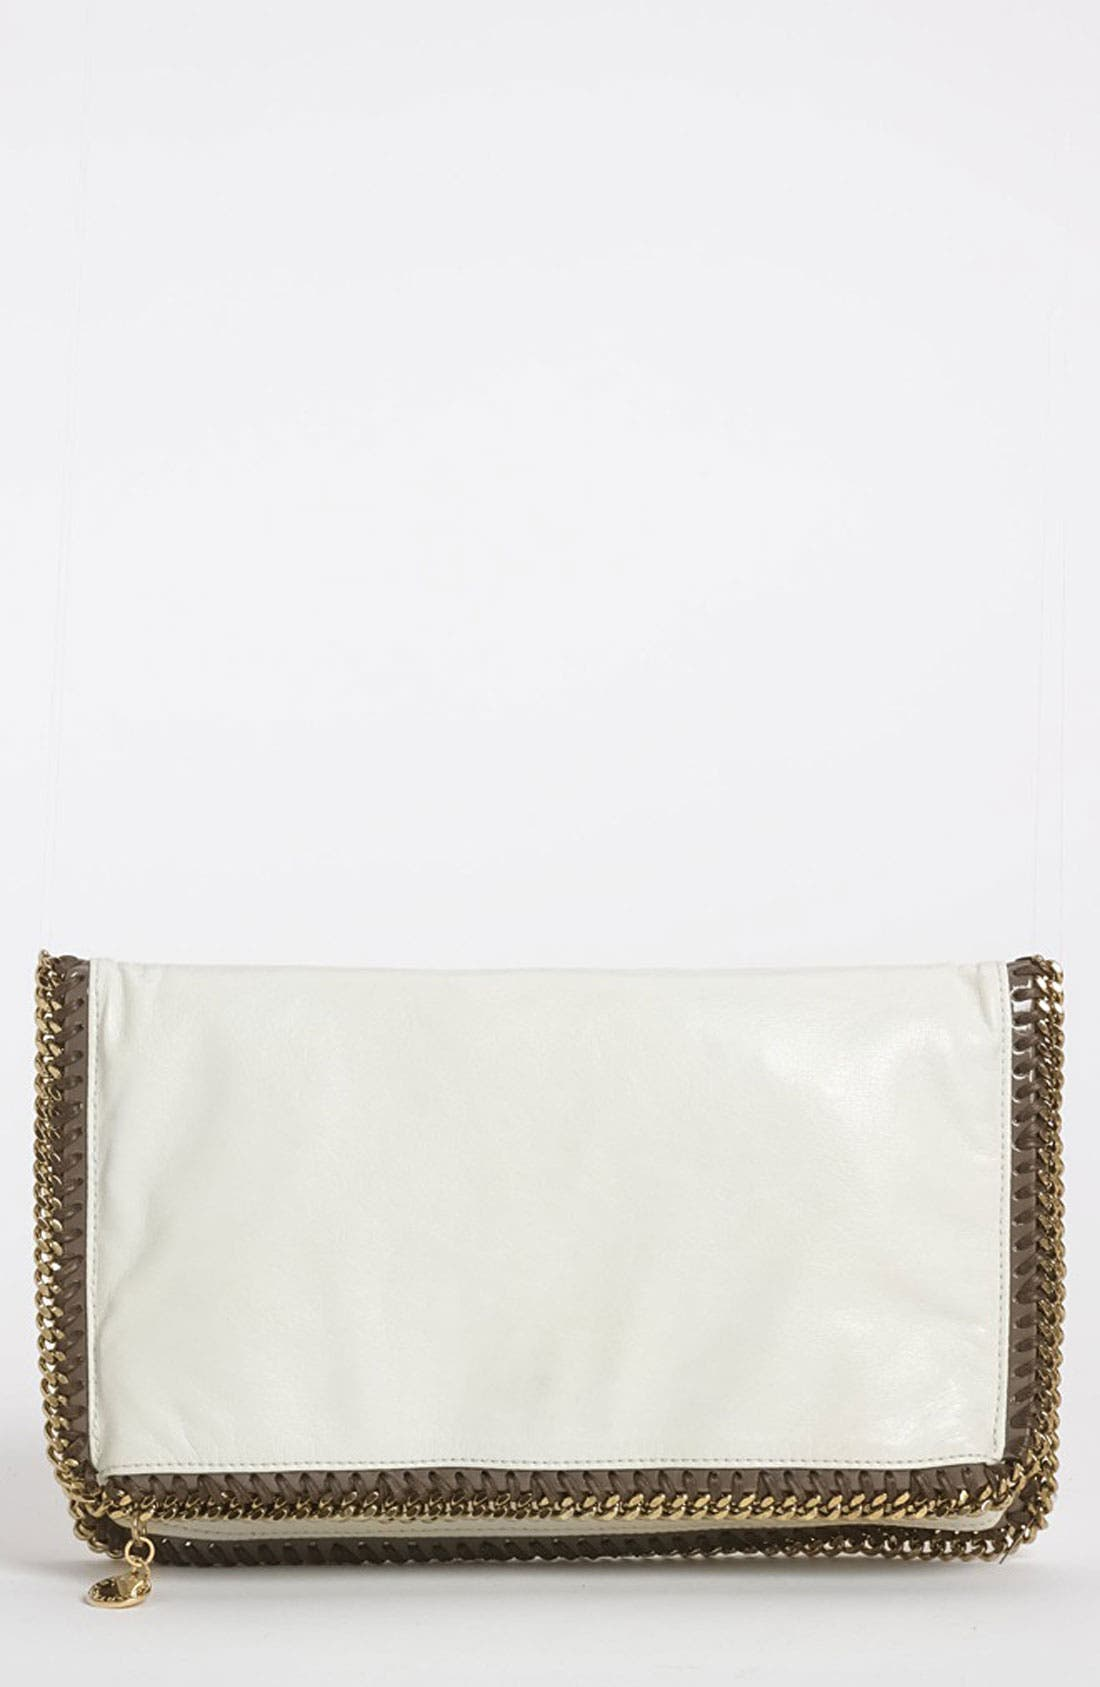 Main Image - Stella McCartney 'Falabella - Galway' Clutch